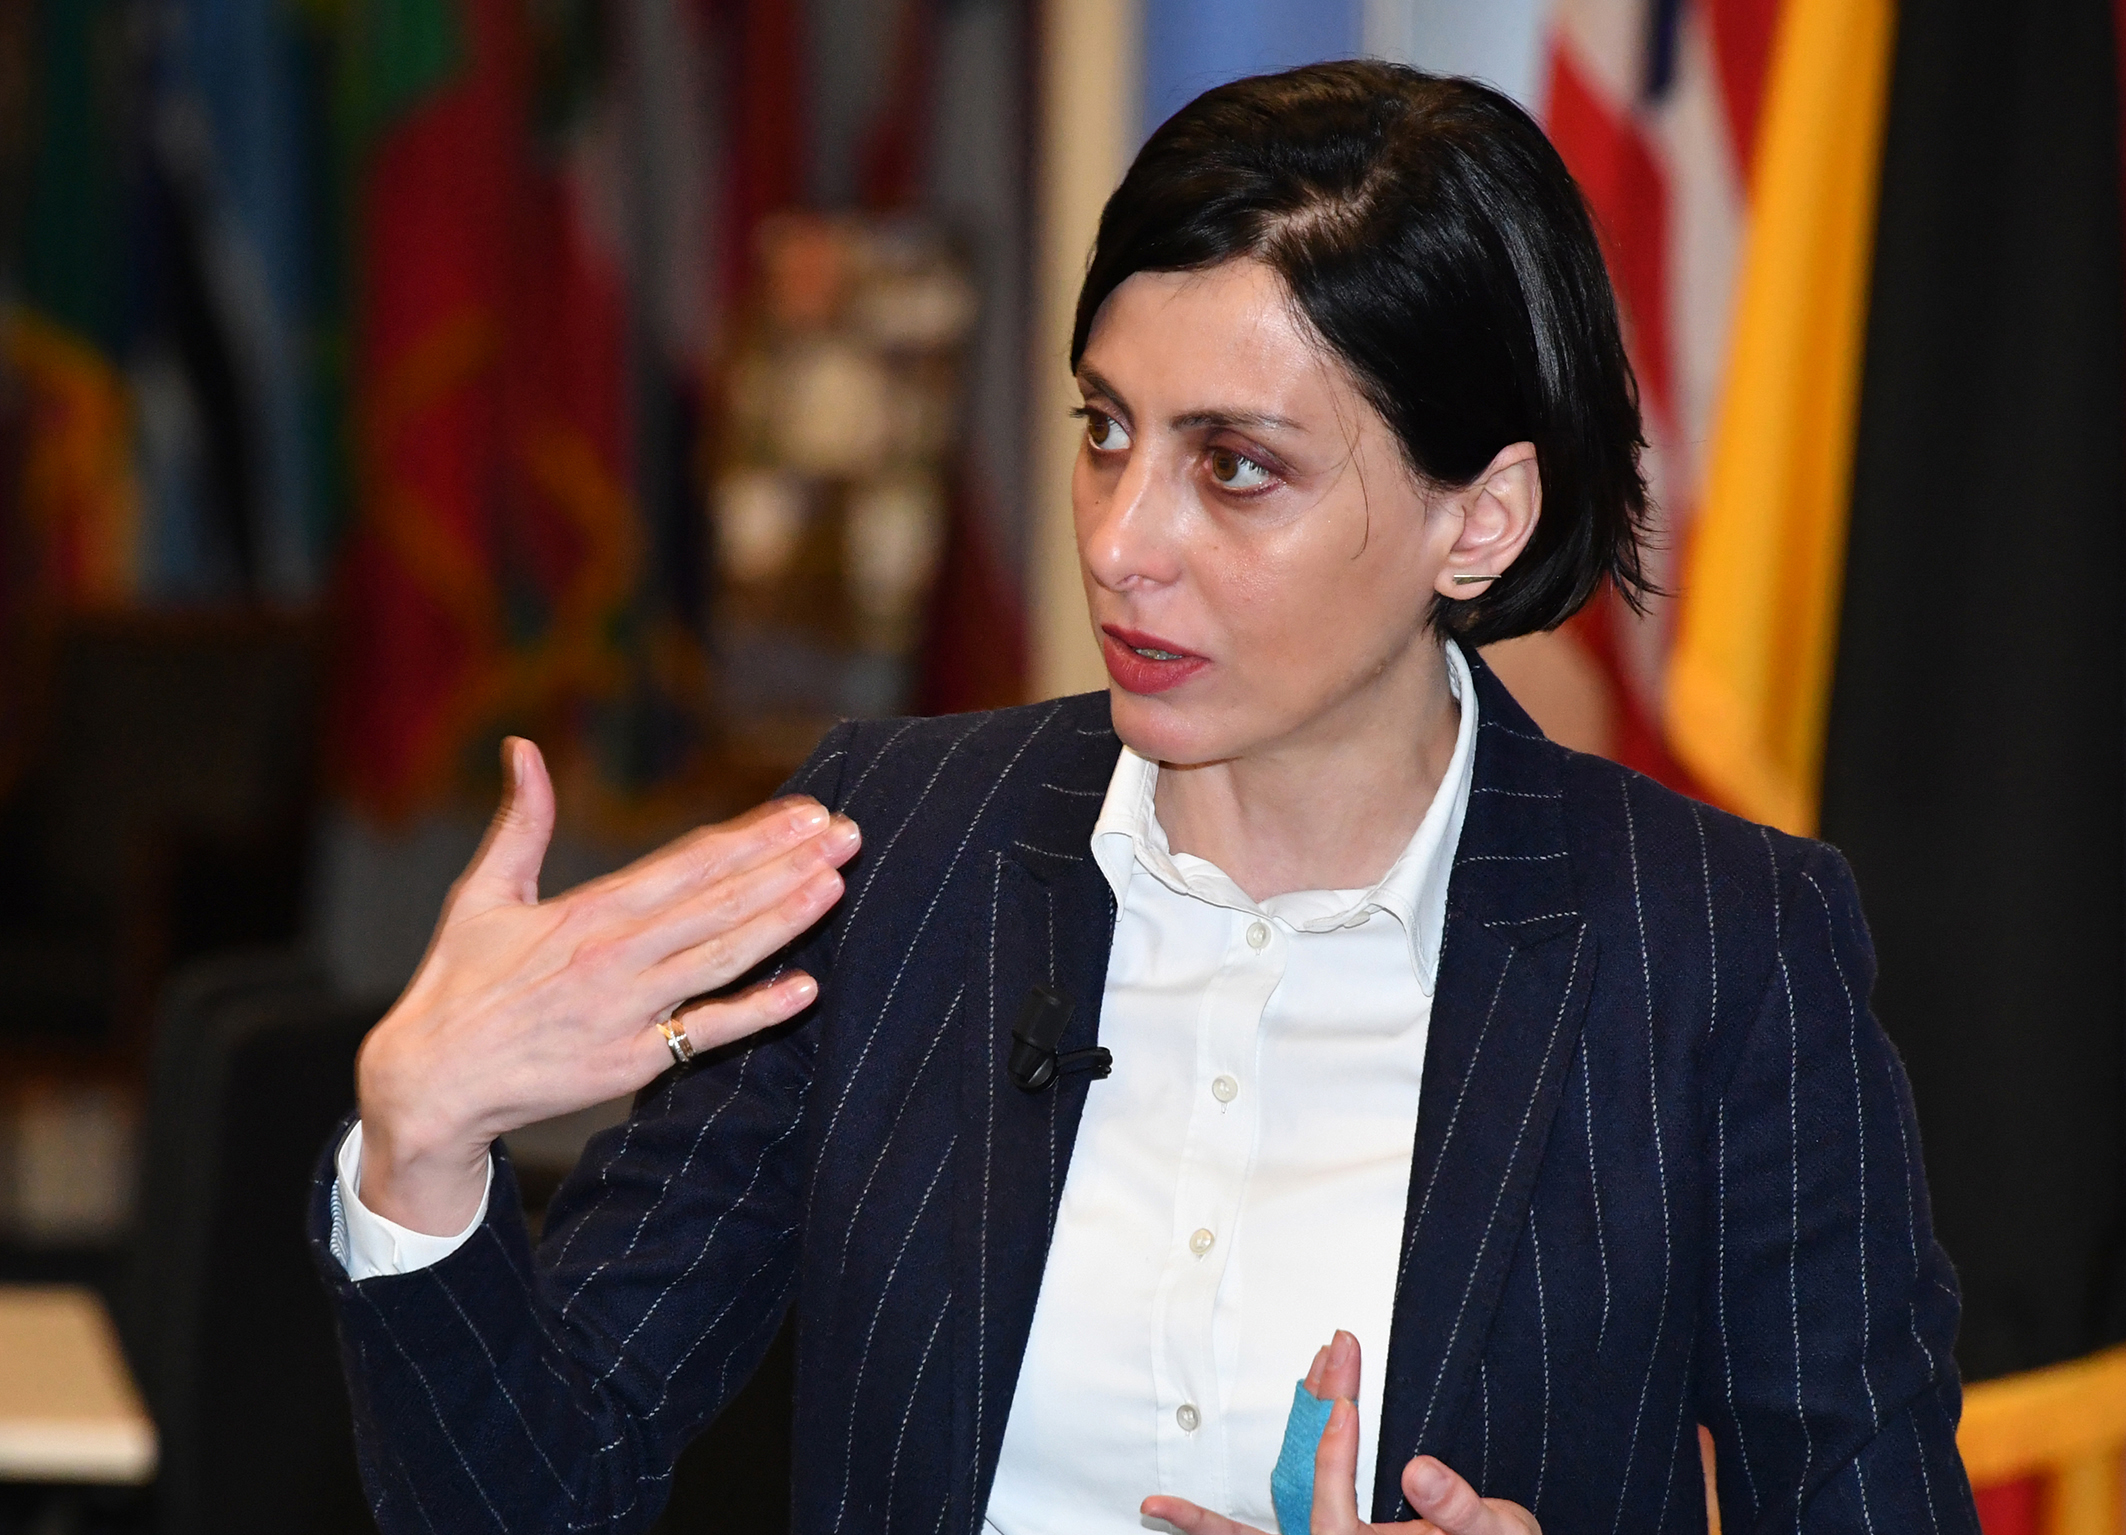 GARMISCH-PARTENKIRCHEN, Germany (April 17, 2018) – Khatia Dekanoidze, adjunct professor of the Program on Countering Transnational Organized Crime at the George C. Marshall European Center for Security Studies, talks about anticorruption reforms and state building to 92 participants from 52 countries attending CTOC at the Marshall Center April 17. Dekanoidze served as the first female chief of the Ukrainian National Police, where she commanded more than 100,000 officers until November 2016. (Marshall Center photo by Karl-Heinz Wedhorn)